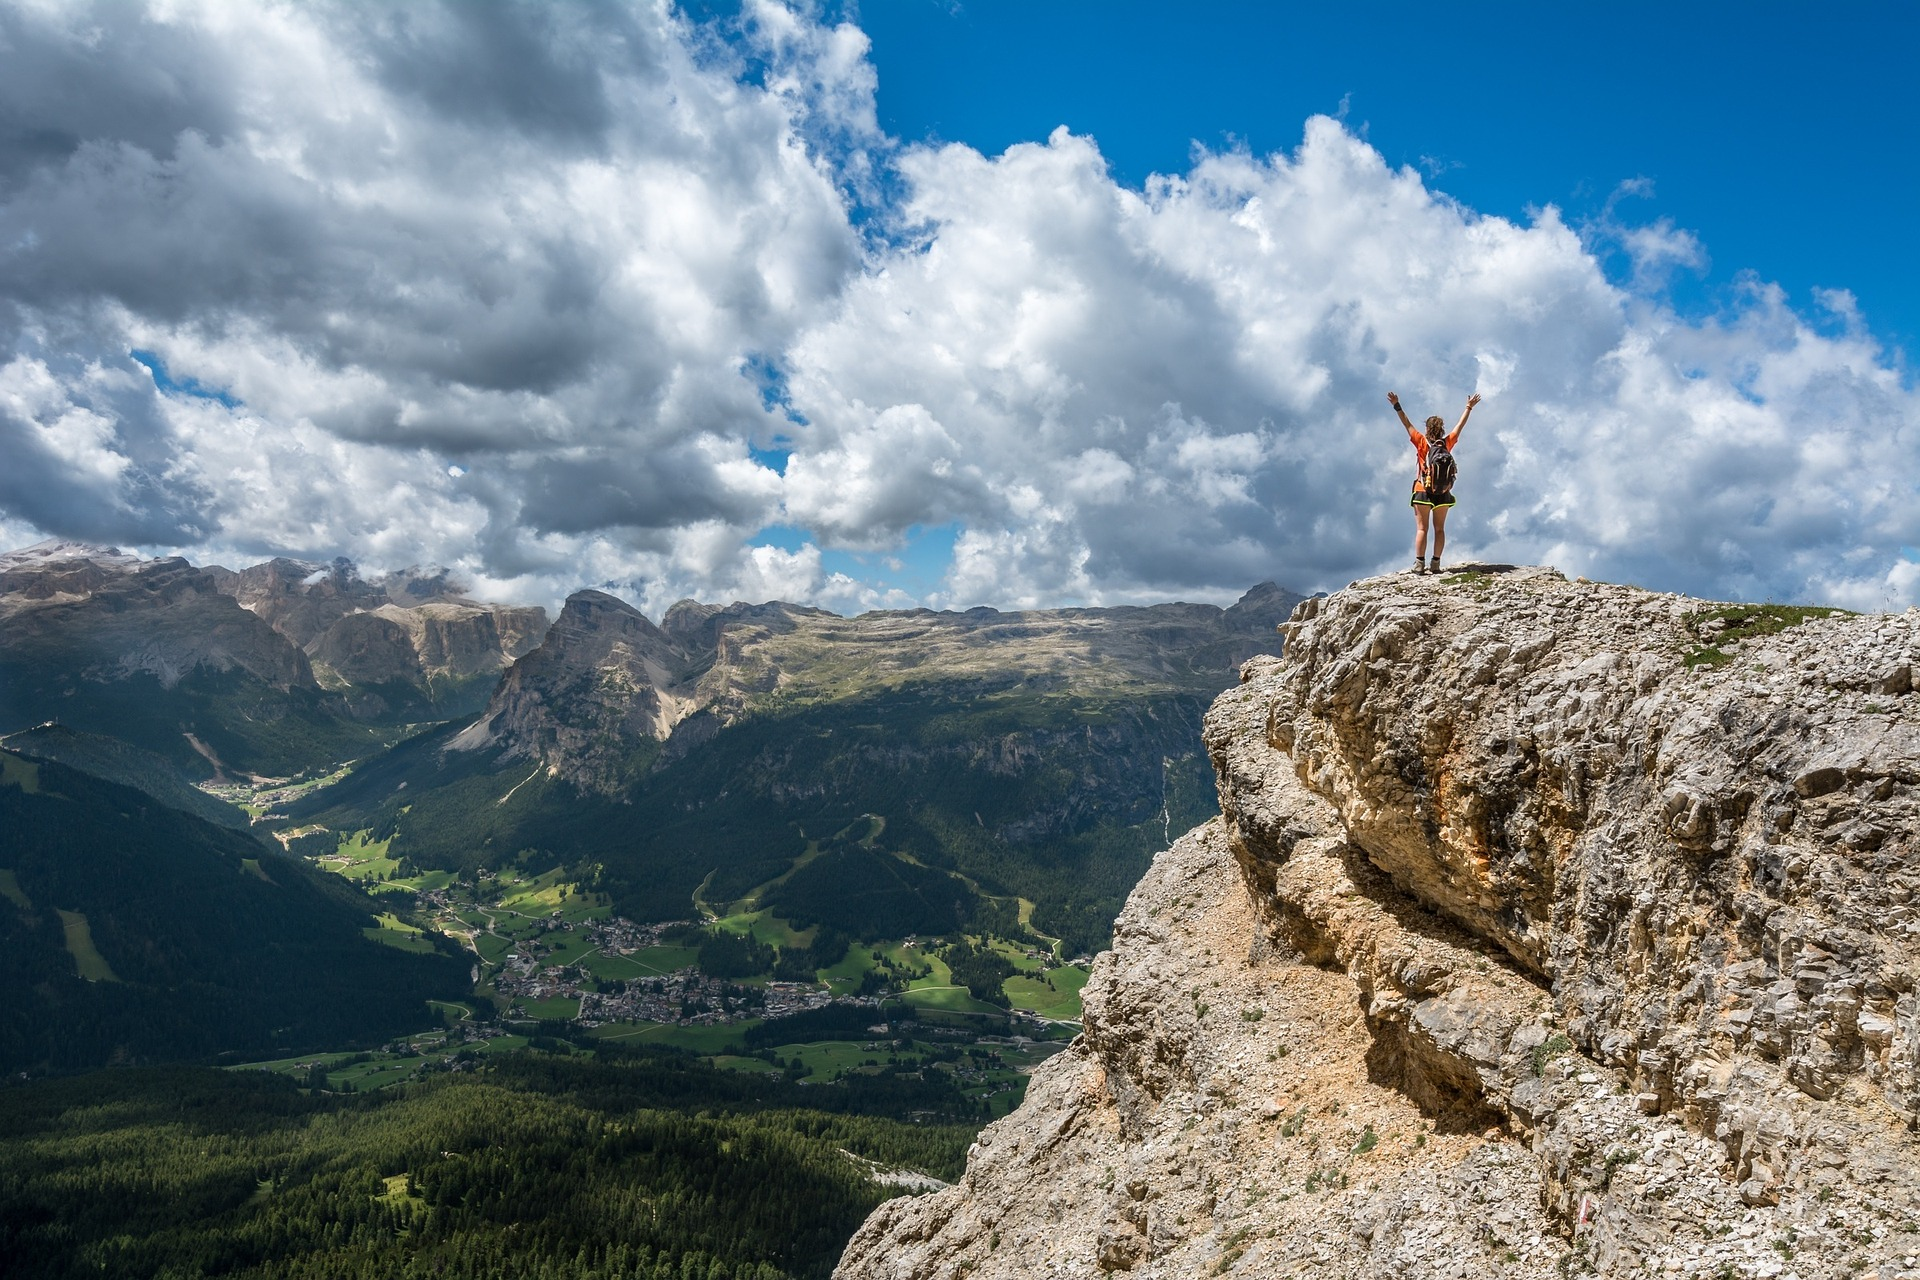 Woman standing on cliff overlooking mountain range